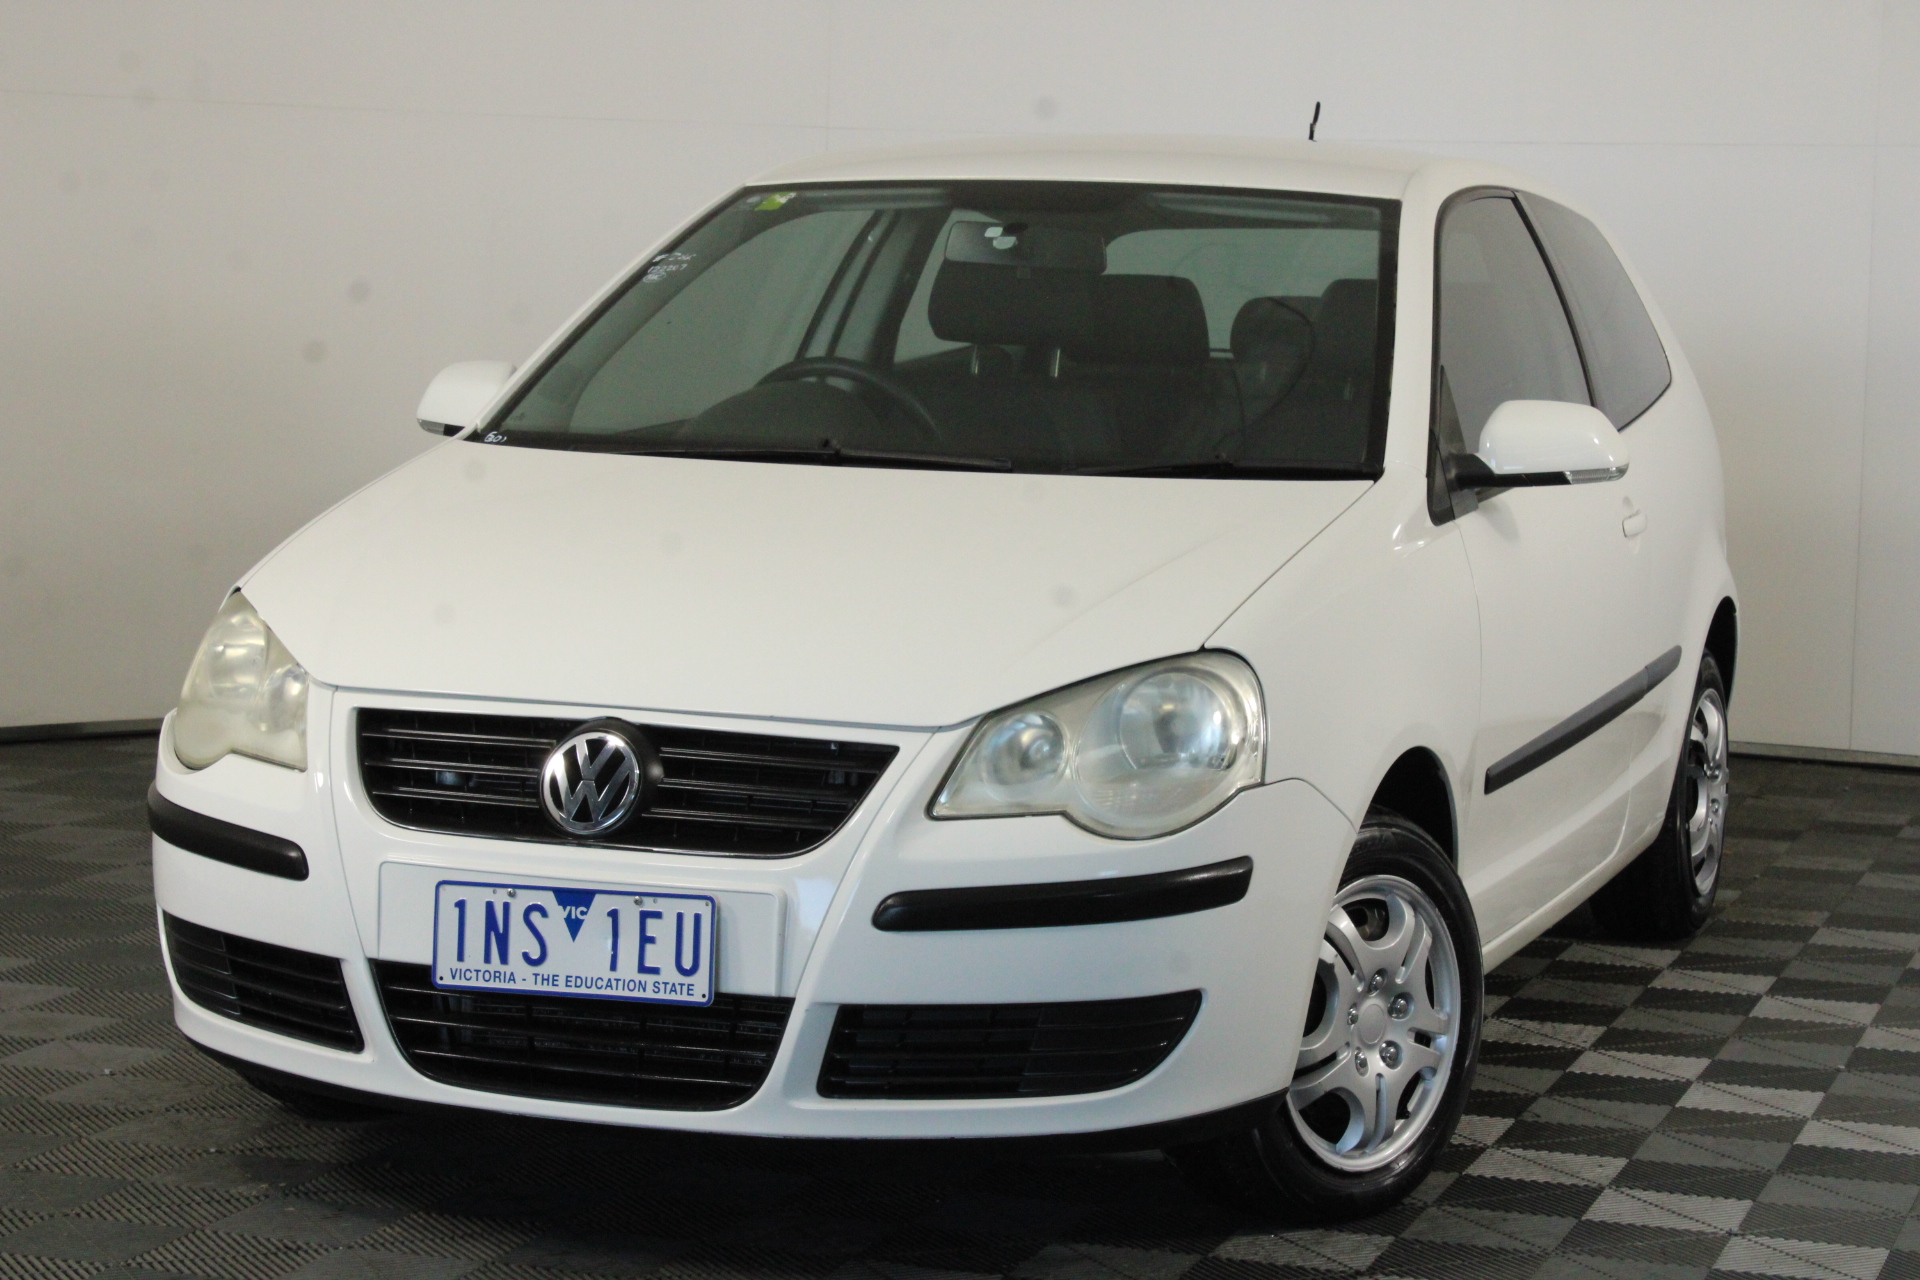 2005 Volkswagen Polo Club 9N Automatic Hatchback